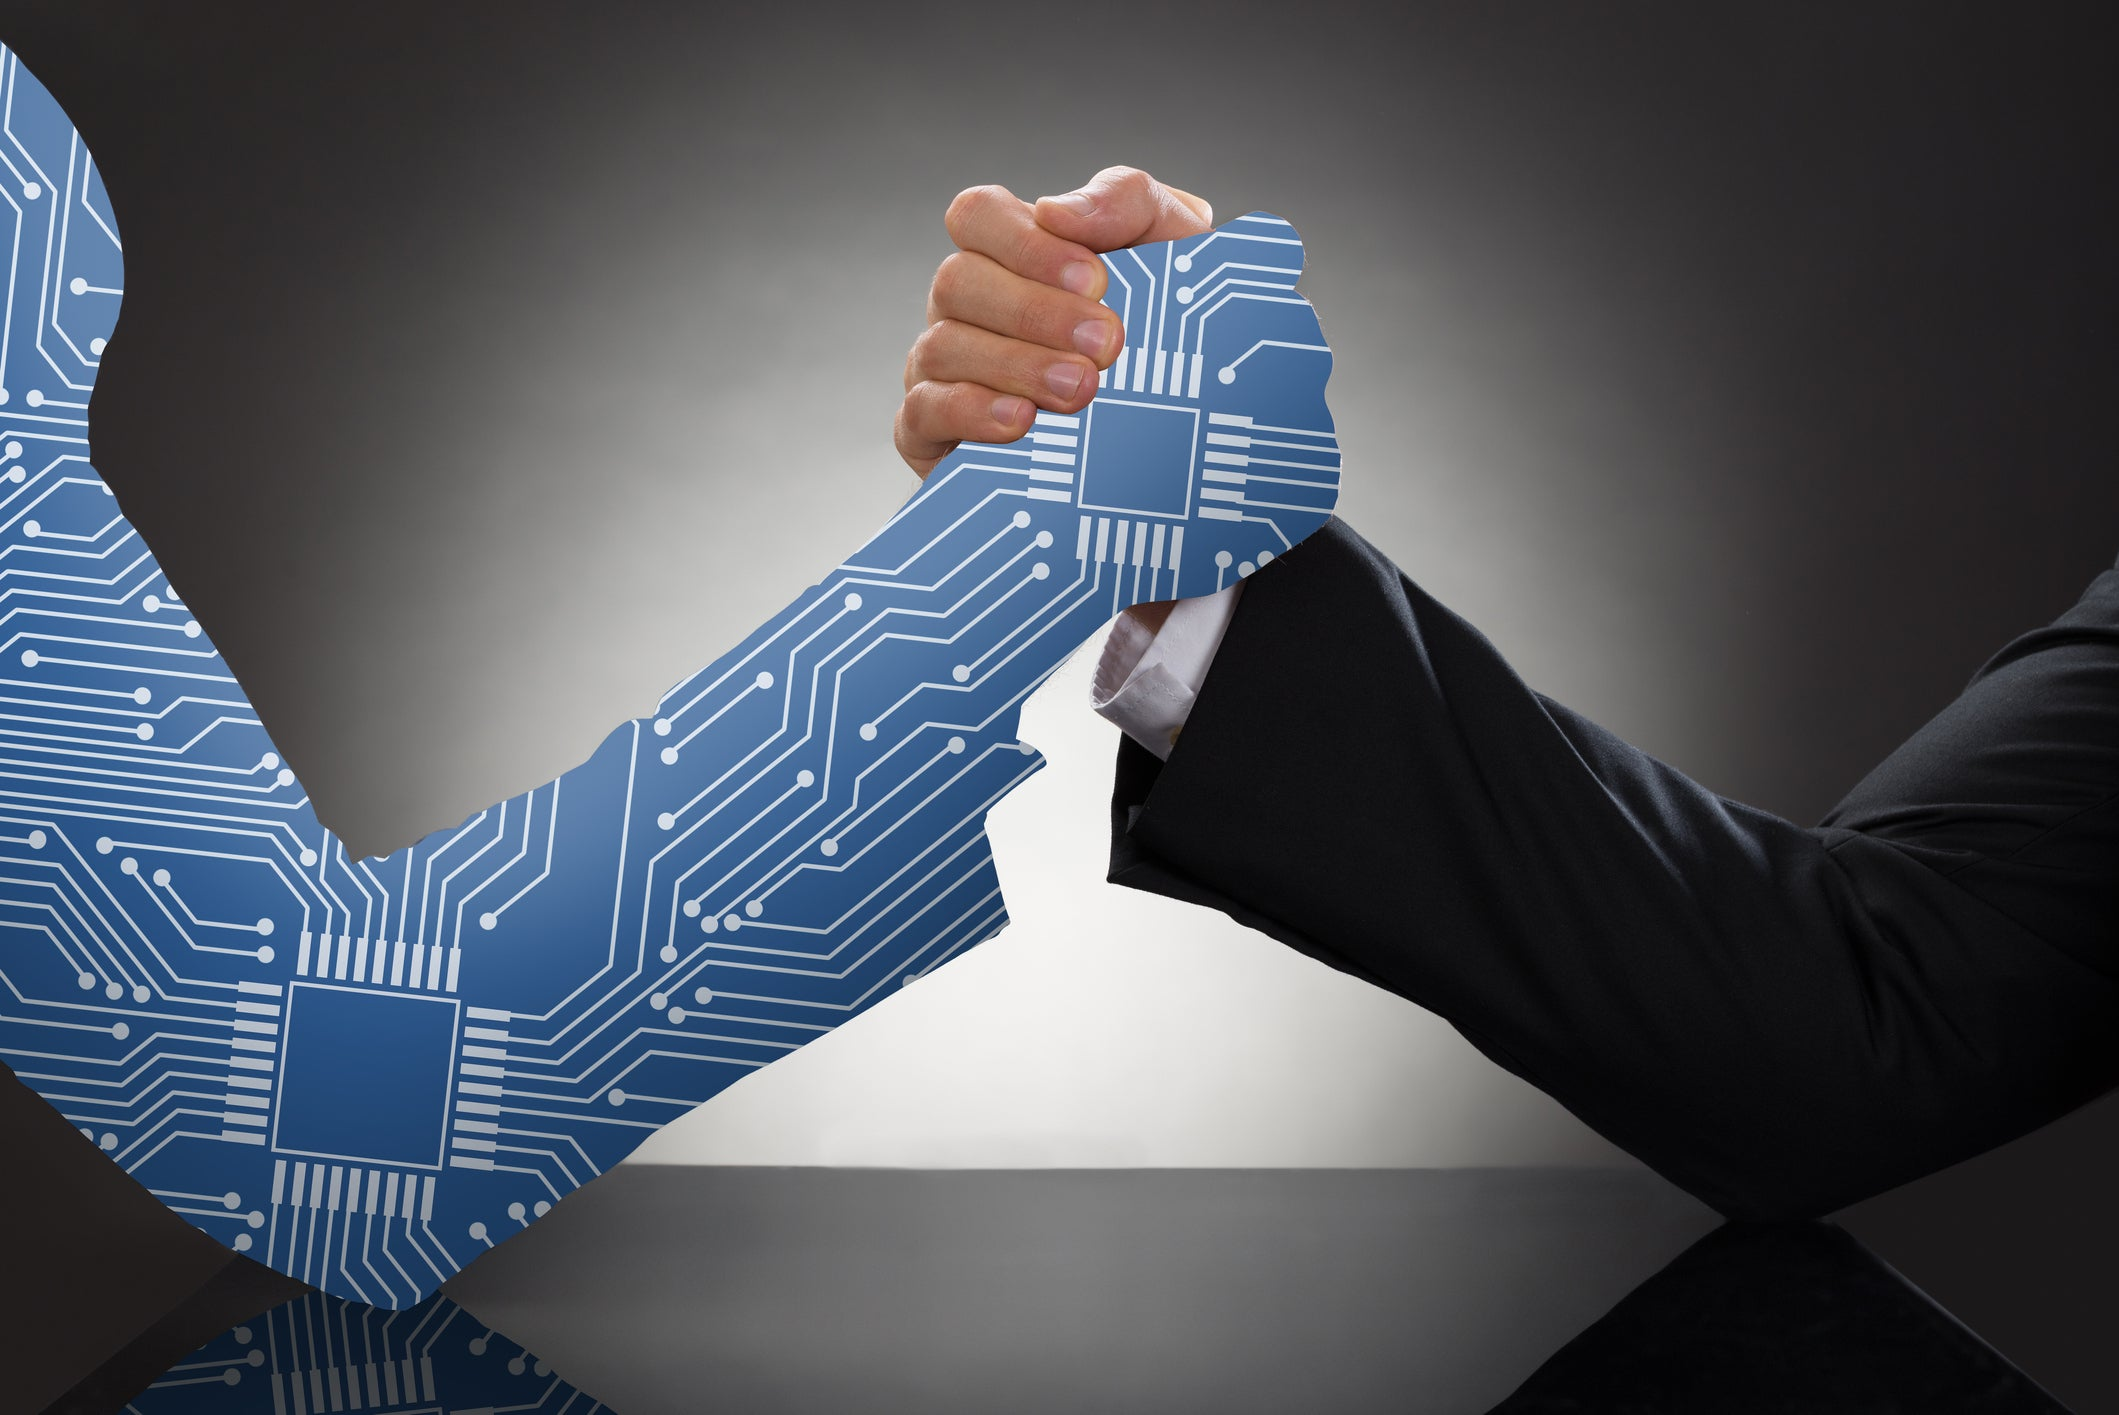 A man in a suit arm wrestles another arm made up of cartoon digital wiring.